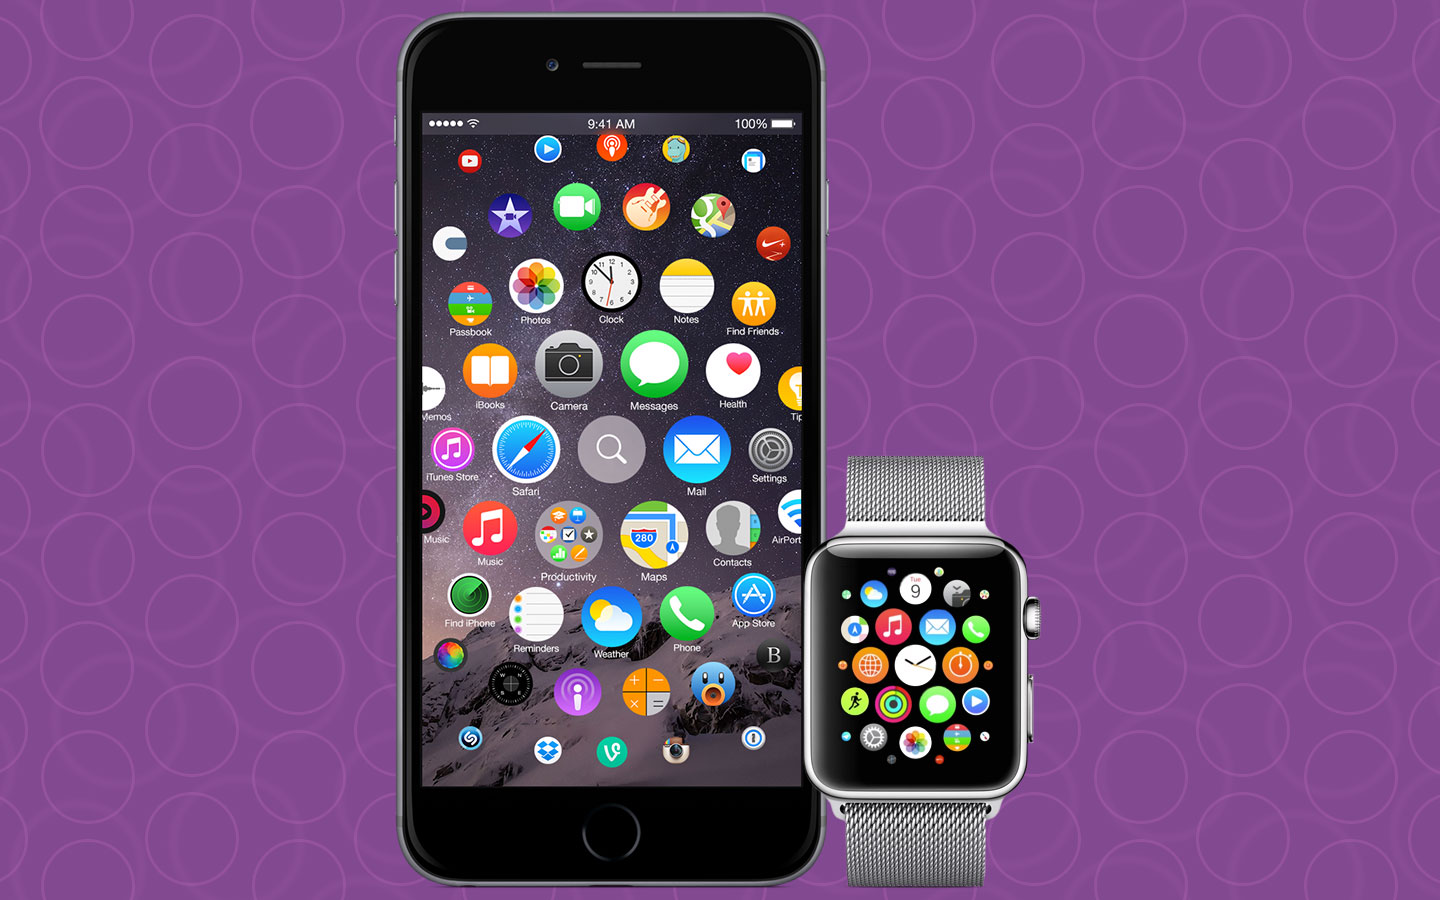 iOS 9 Redesign: iPhone 7 mit Apple Watch Interface?